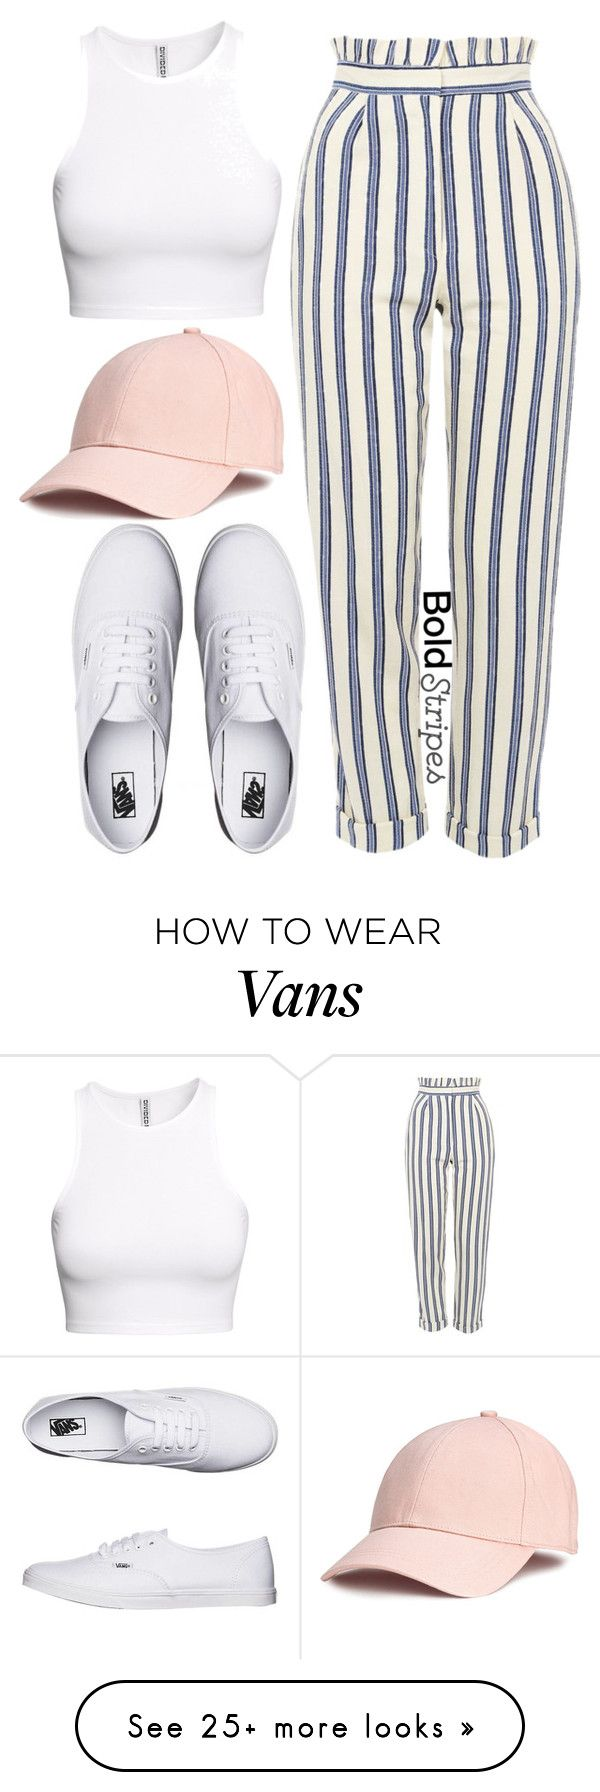 """""""1335."""" by asoul4 on Polyvore featuring H&M, Topshop, Vans, stripedpants and casuallook"""